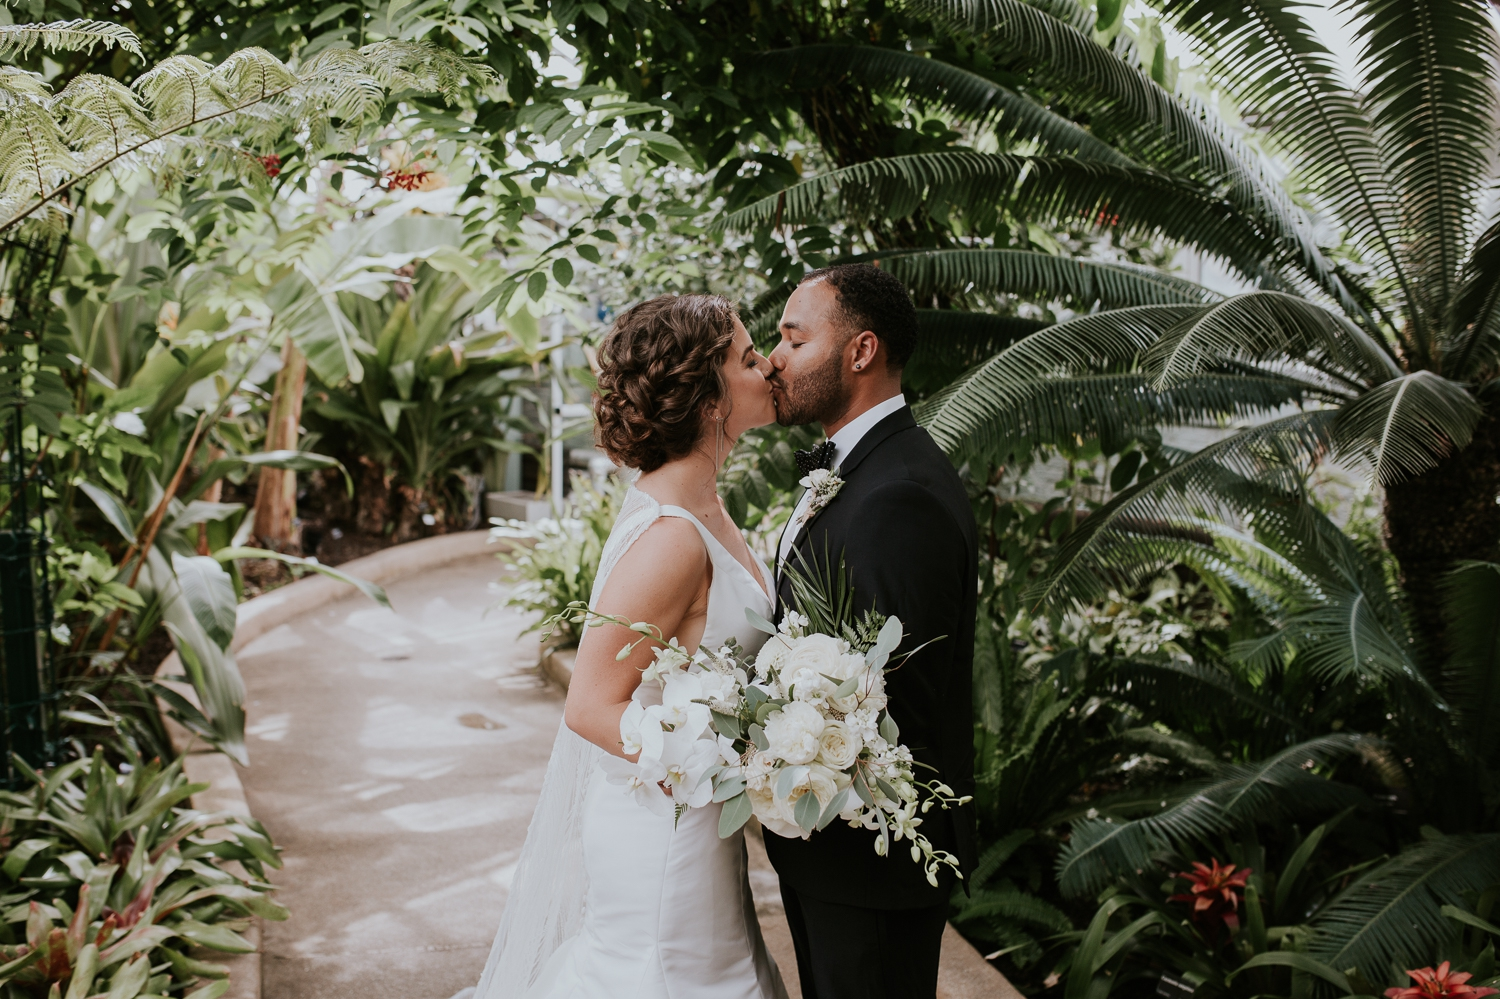 baltimore-maryland-rawlings-conservatory-wedding-portaits-photography 39.jpg